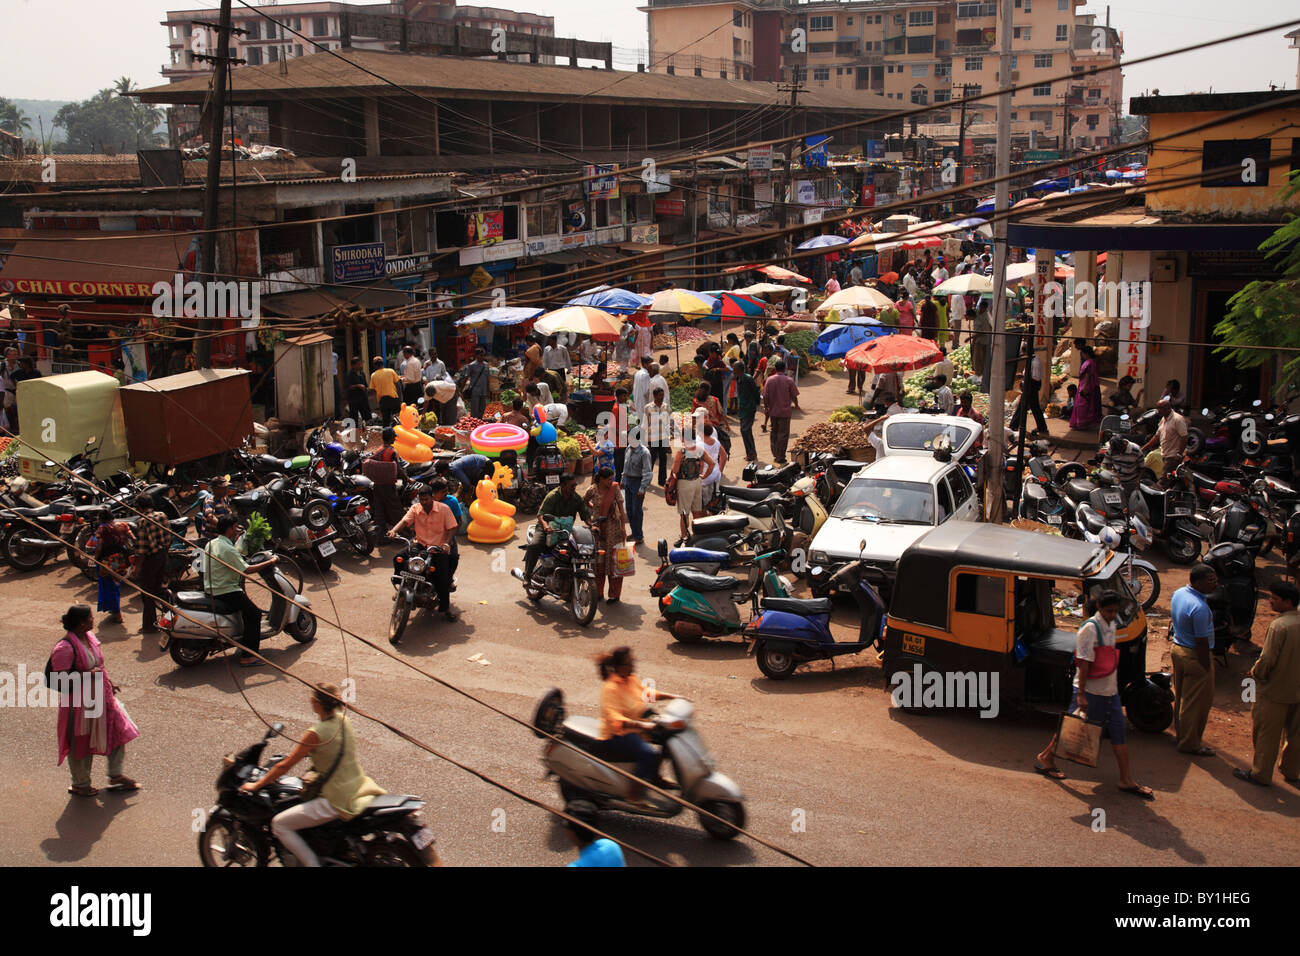 Looking down on a busy street Goa India 25 January 2008 - Stock Image